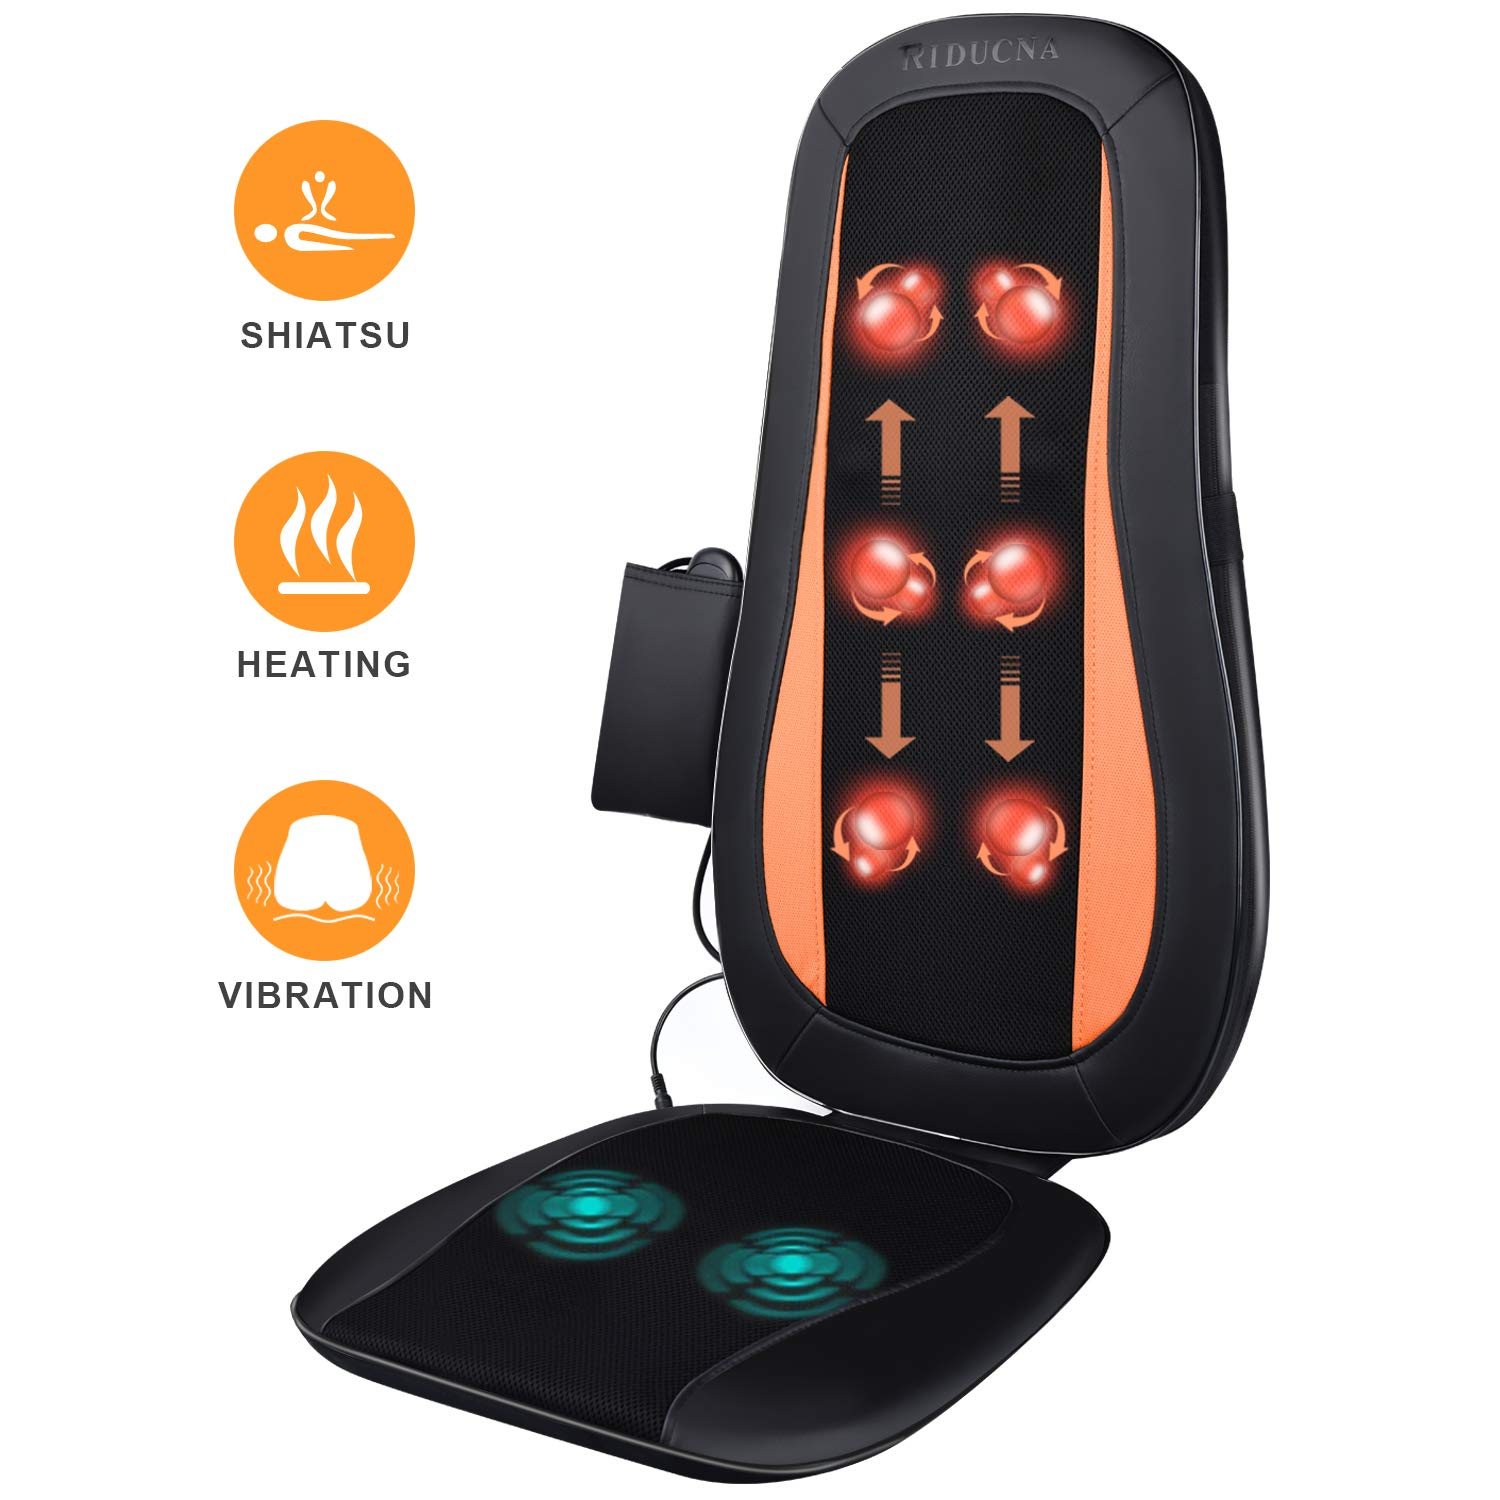 Massage Chair Pad Shiatsu Back Massager with Heat - Electric Massage Cushion with Deep Tissue Kneading for Full Back Muscle Pain Relief - Home and Office Use by TRIDUCNA